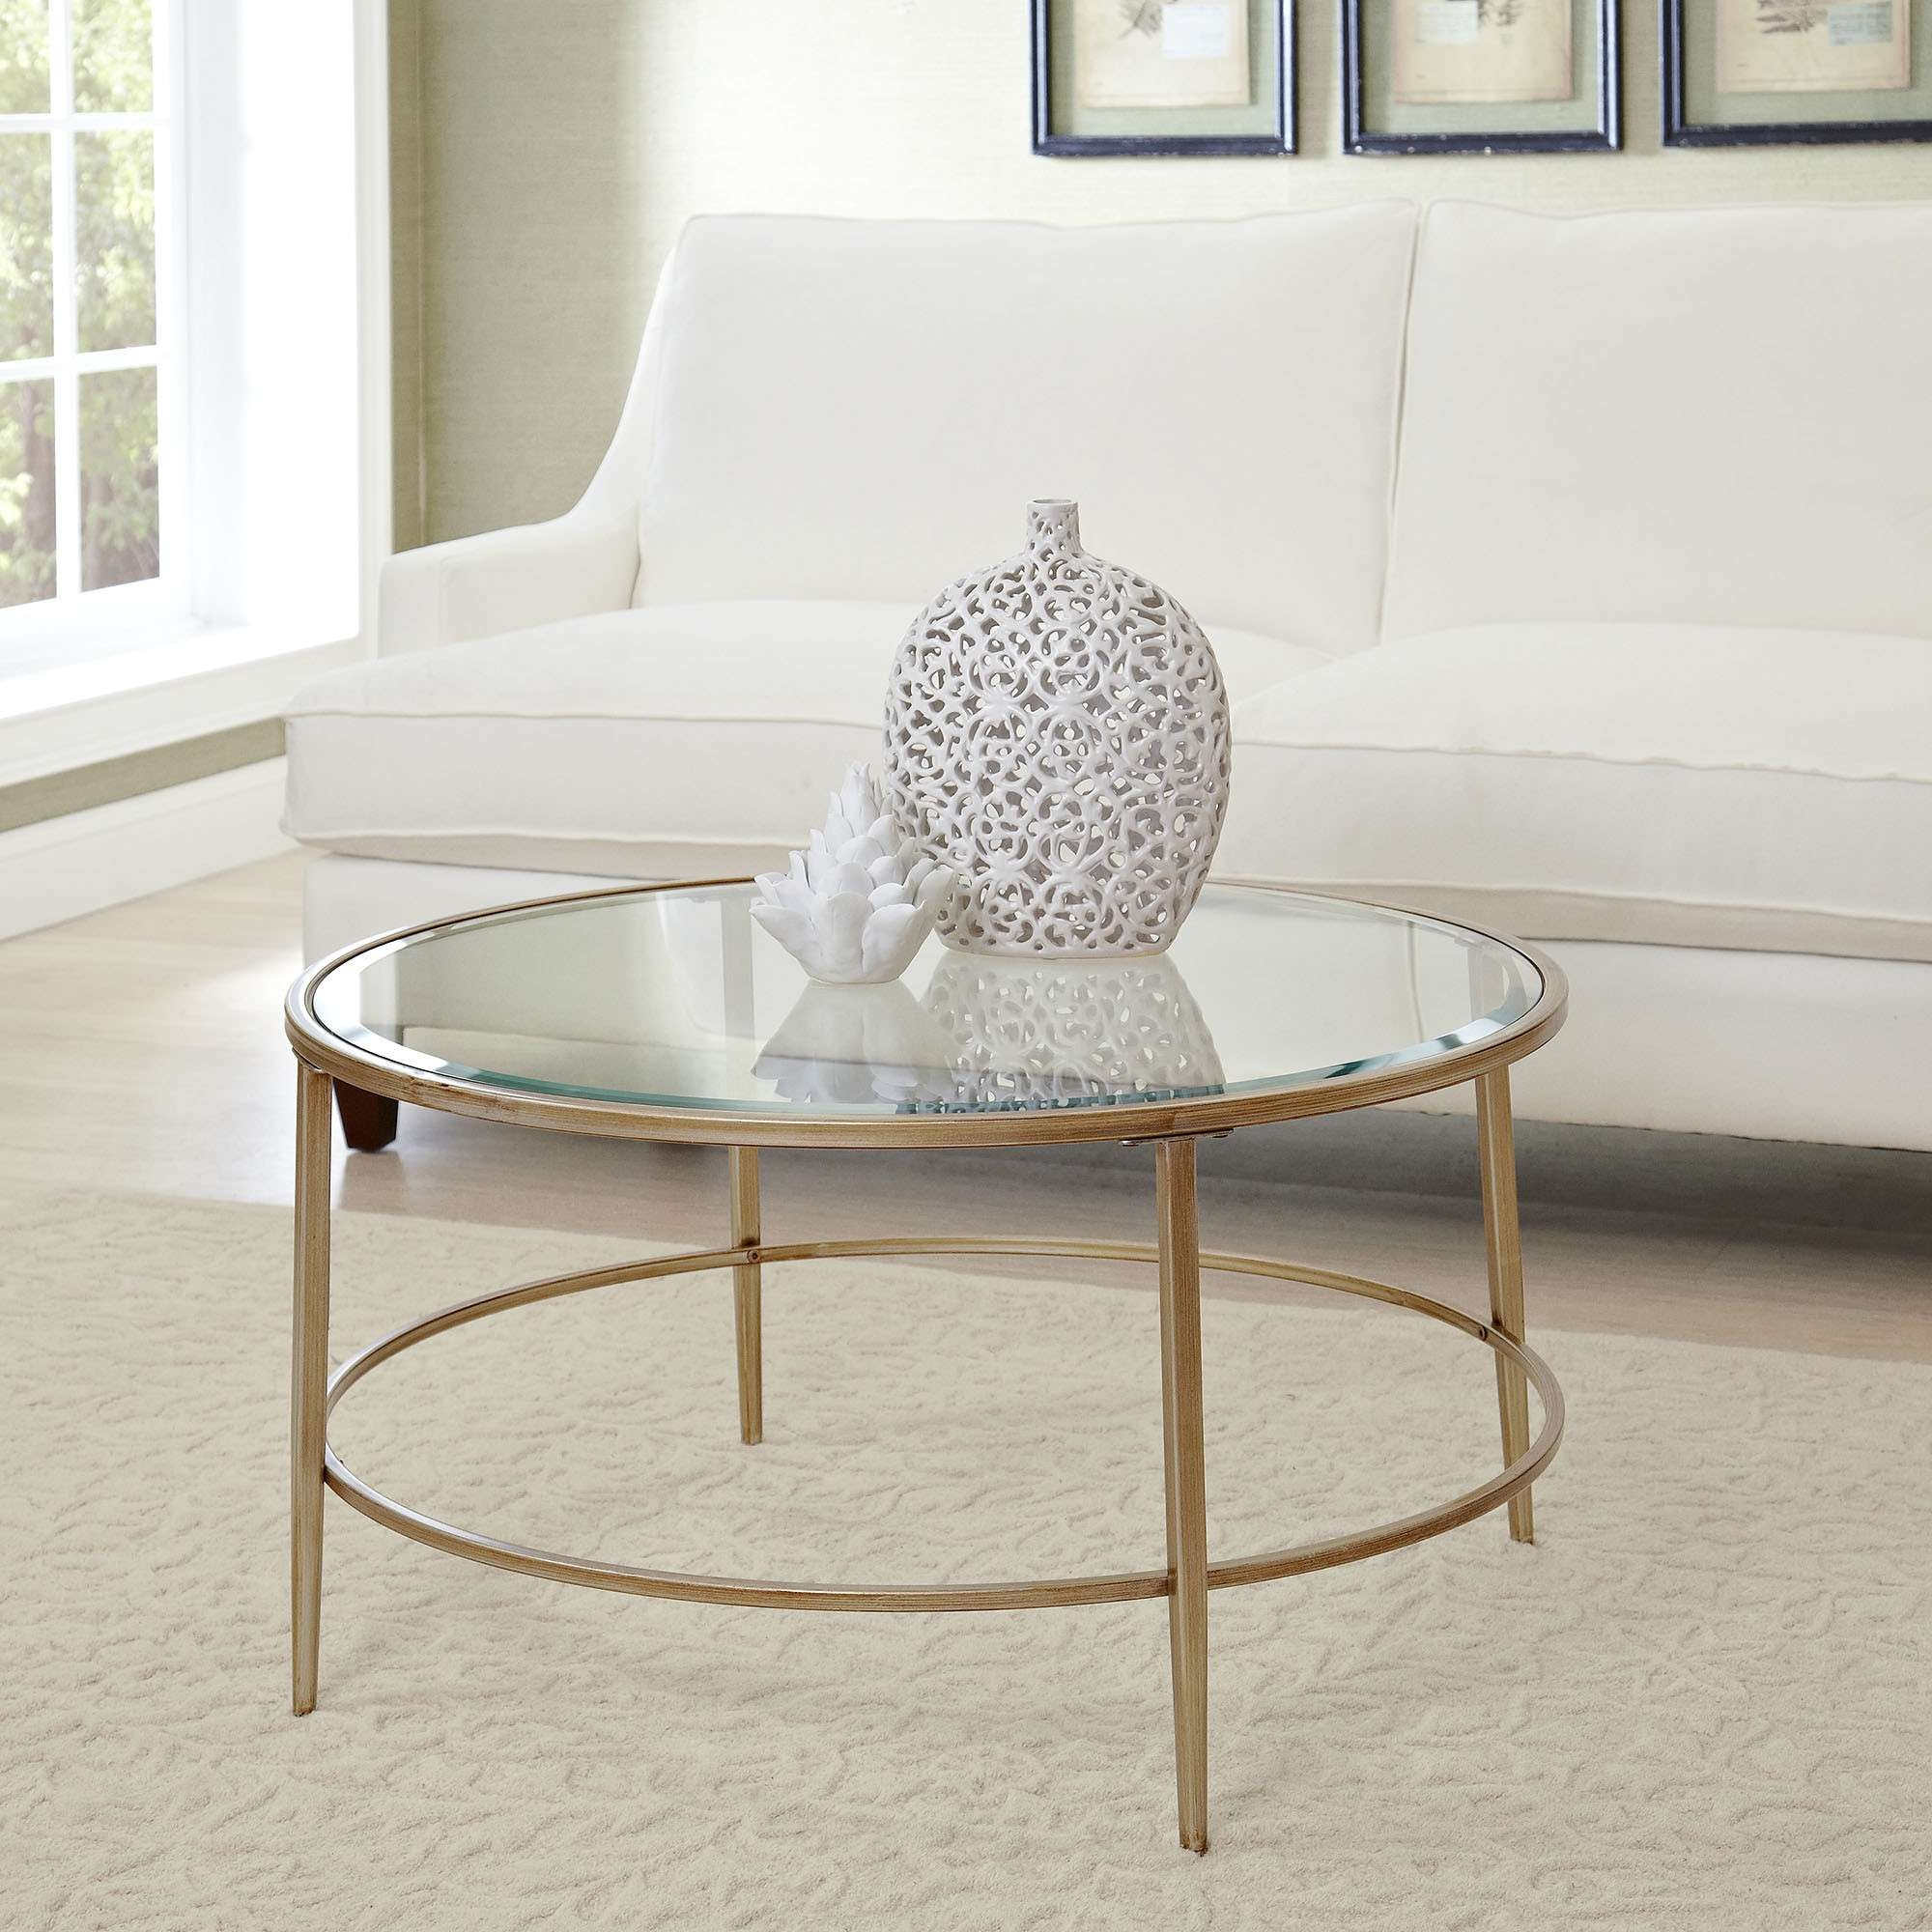 Coffee Tables : Coffee Table Wayfair Glass In Splendid Round In Newest Wayfair Coffee Table Sets (View 4 of 20)